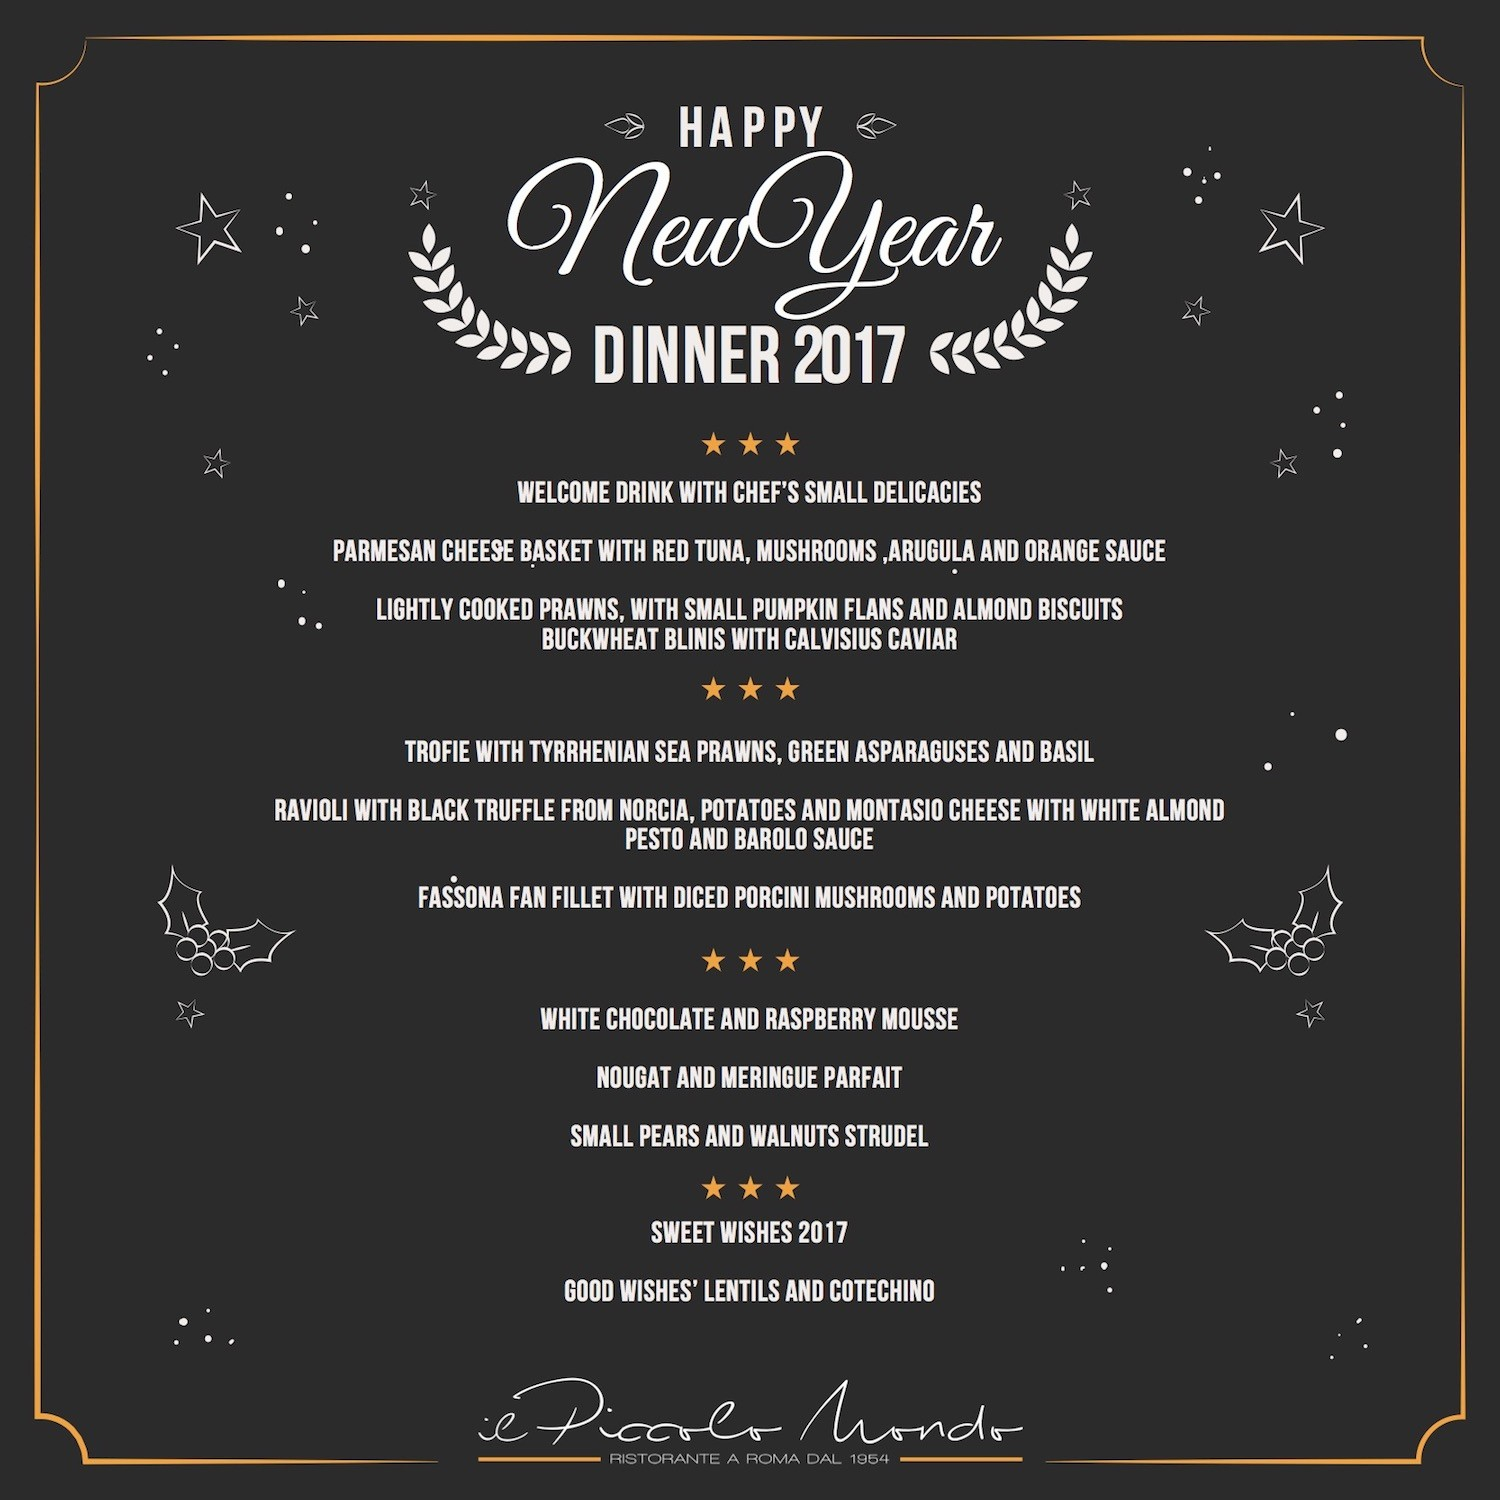 New Years Eve Menu Template Fresh New Year S Eve In Rome Il Piccolo Mondo Restaurant